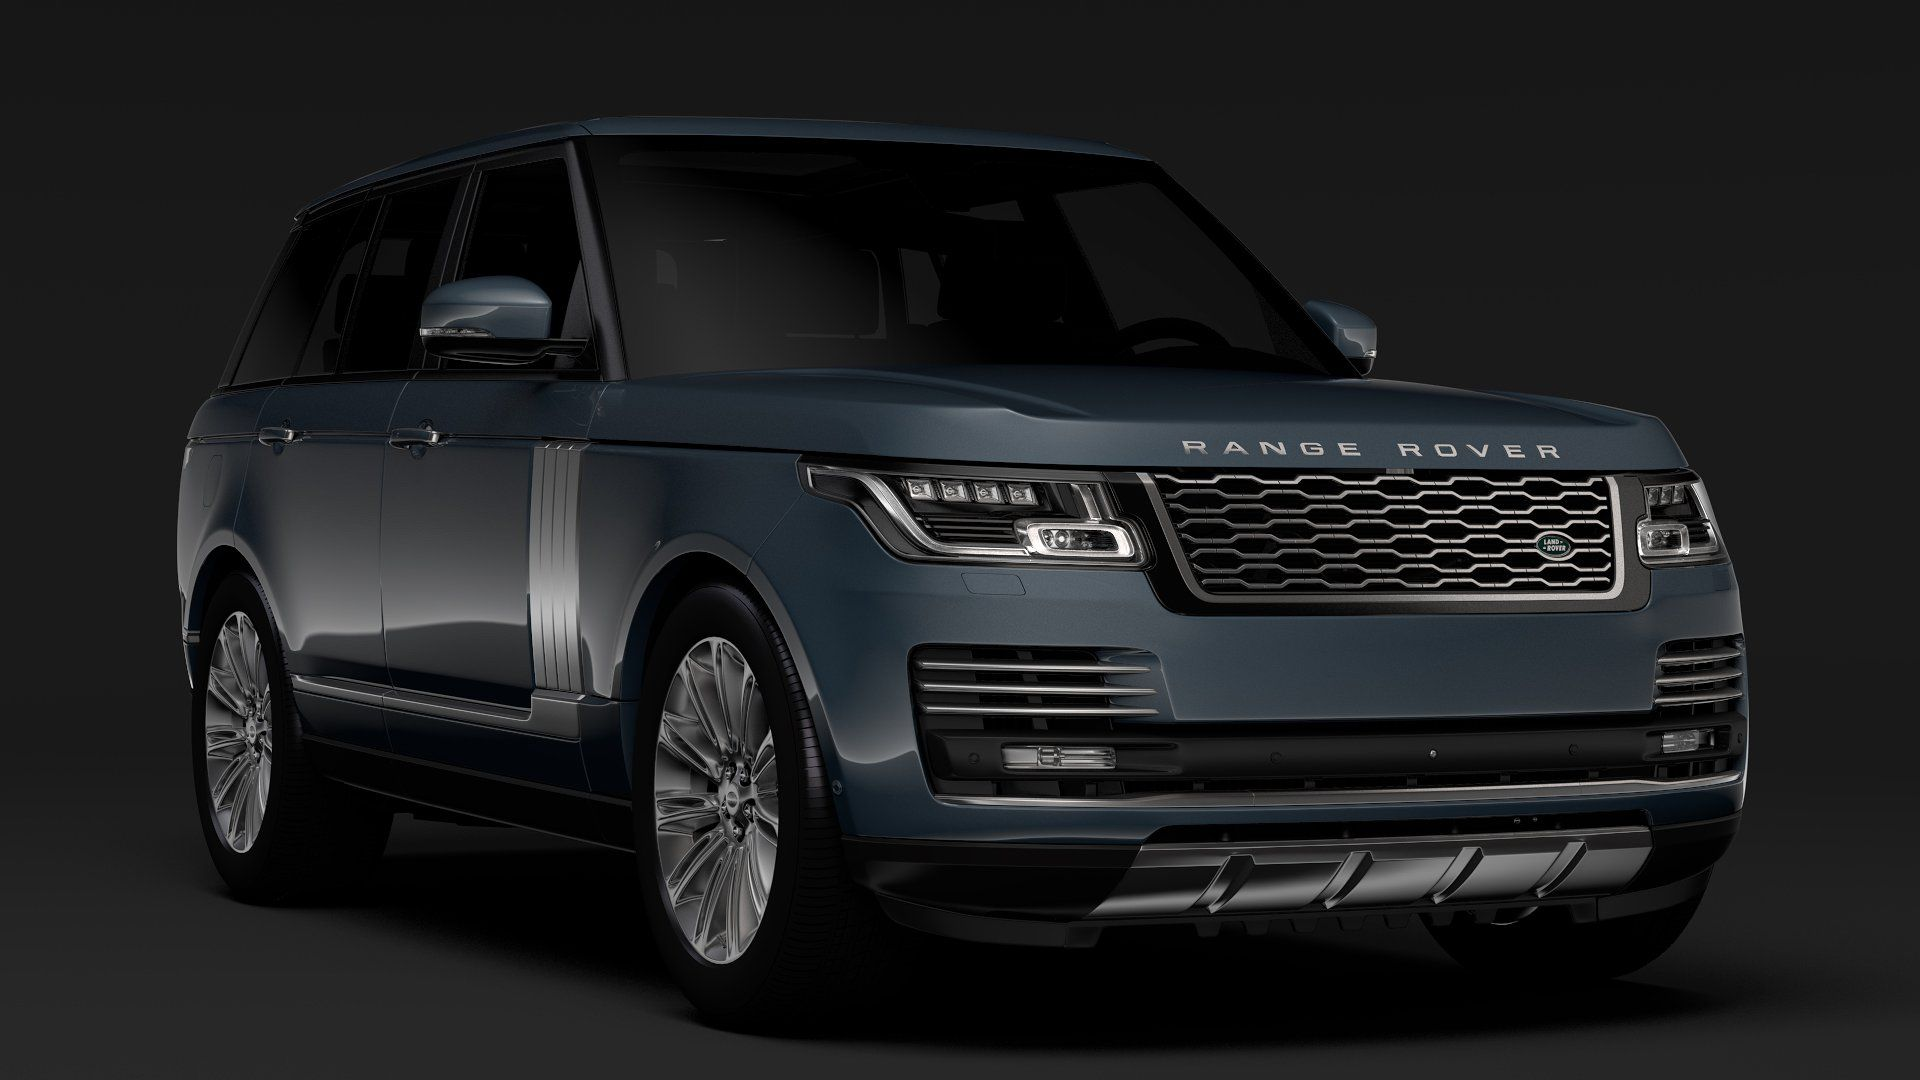 Range Rover Autobiography (L405) (With images) Range